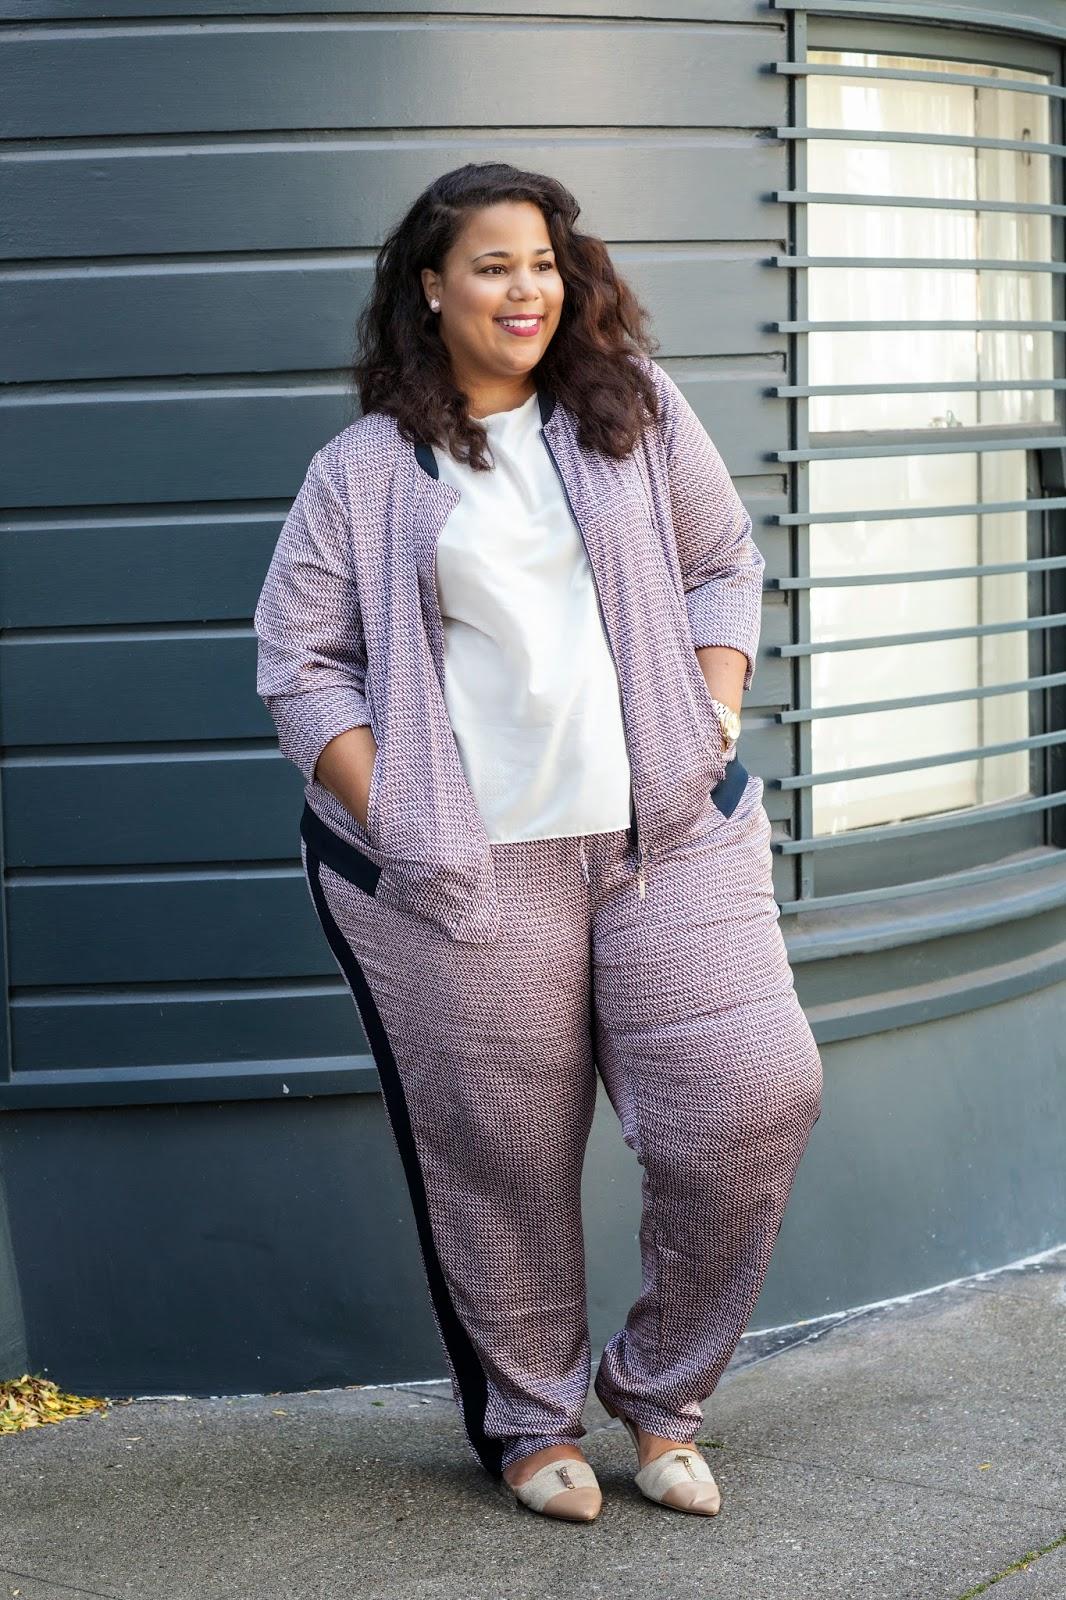 Society Shoe Review, Plus Size Jogging Suit